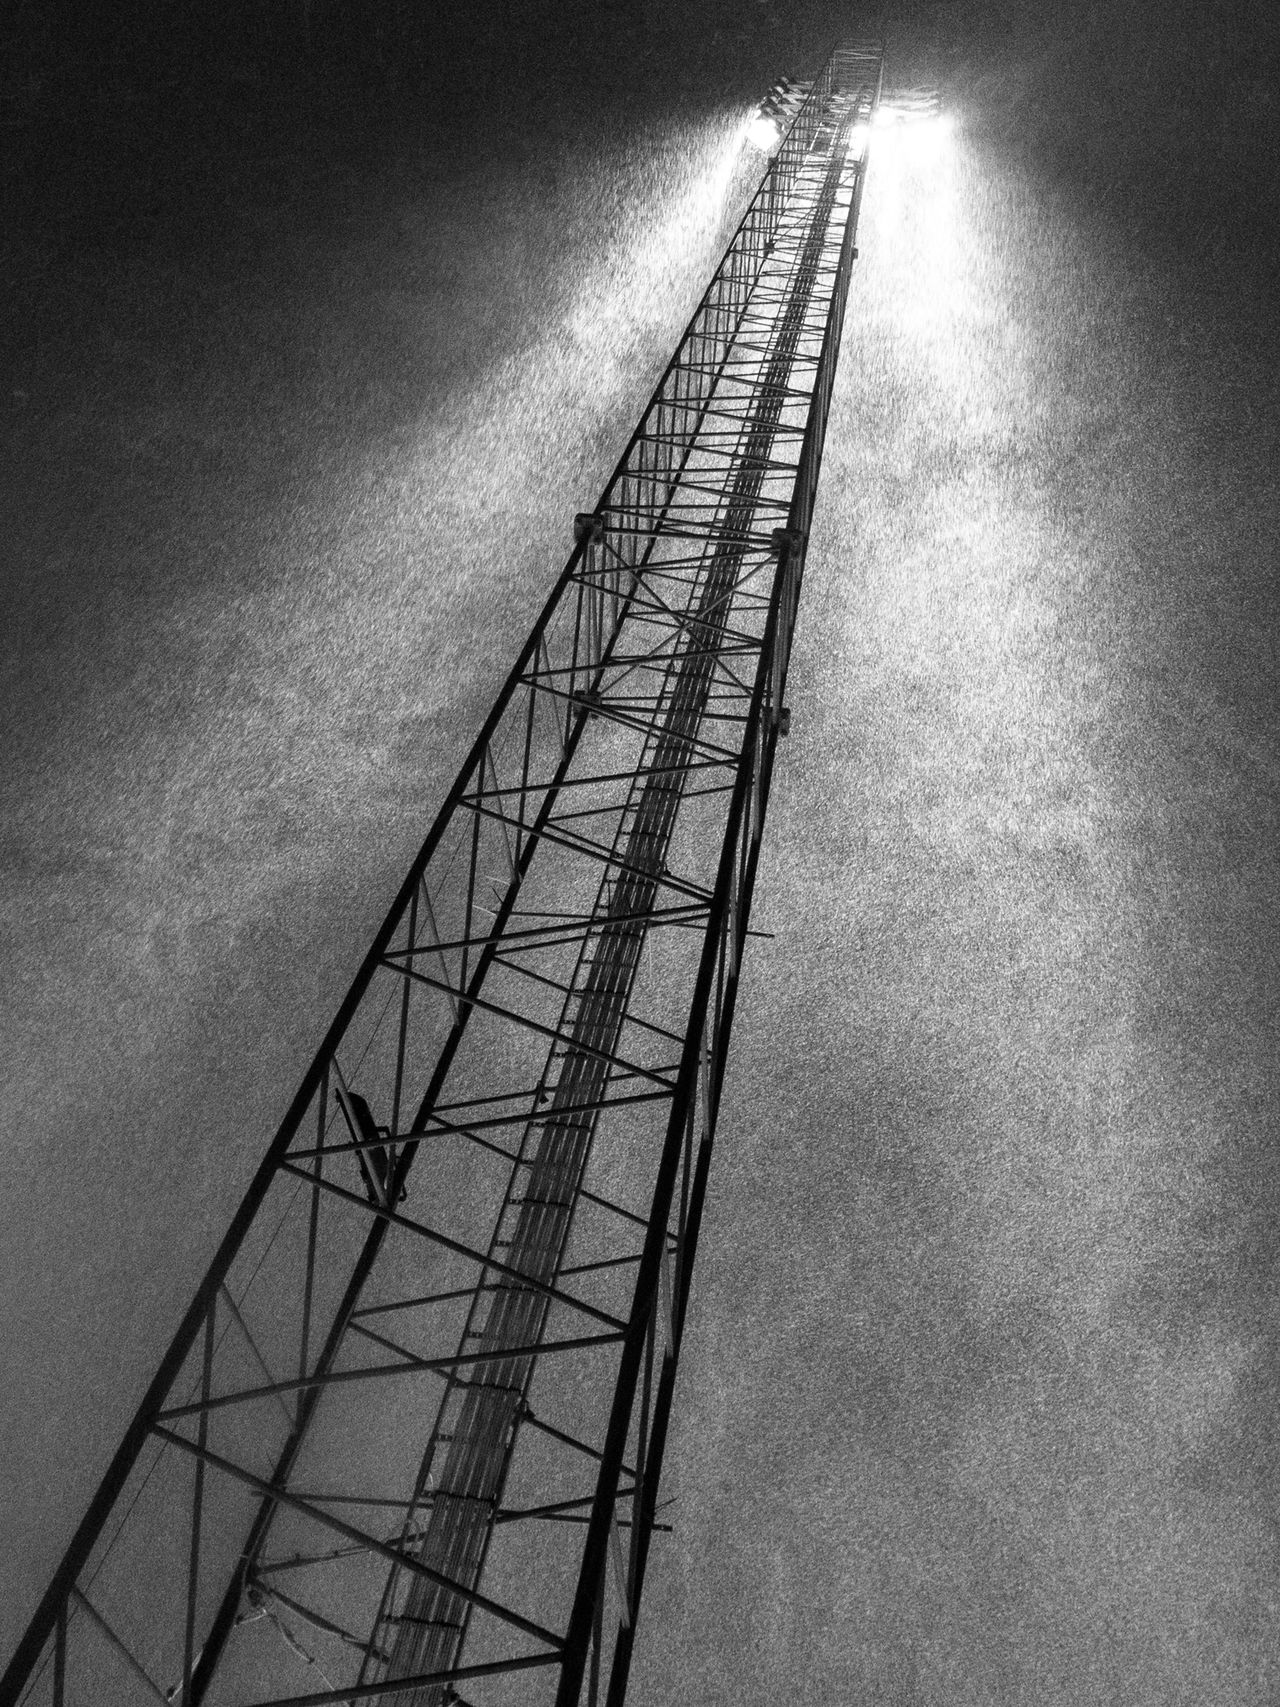 Stairway to heaven Architecture Black And White Winter Engineering Light And Shadow Metallic Objects Snowfall Zinkensdamm Silhouette Showcase: November Fine Art Photography Dramatic Angles Monochrome Photography